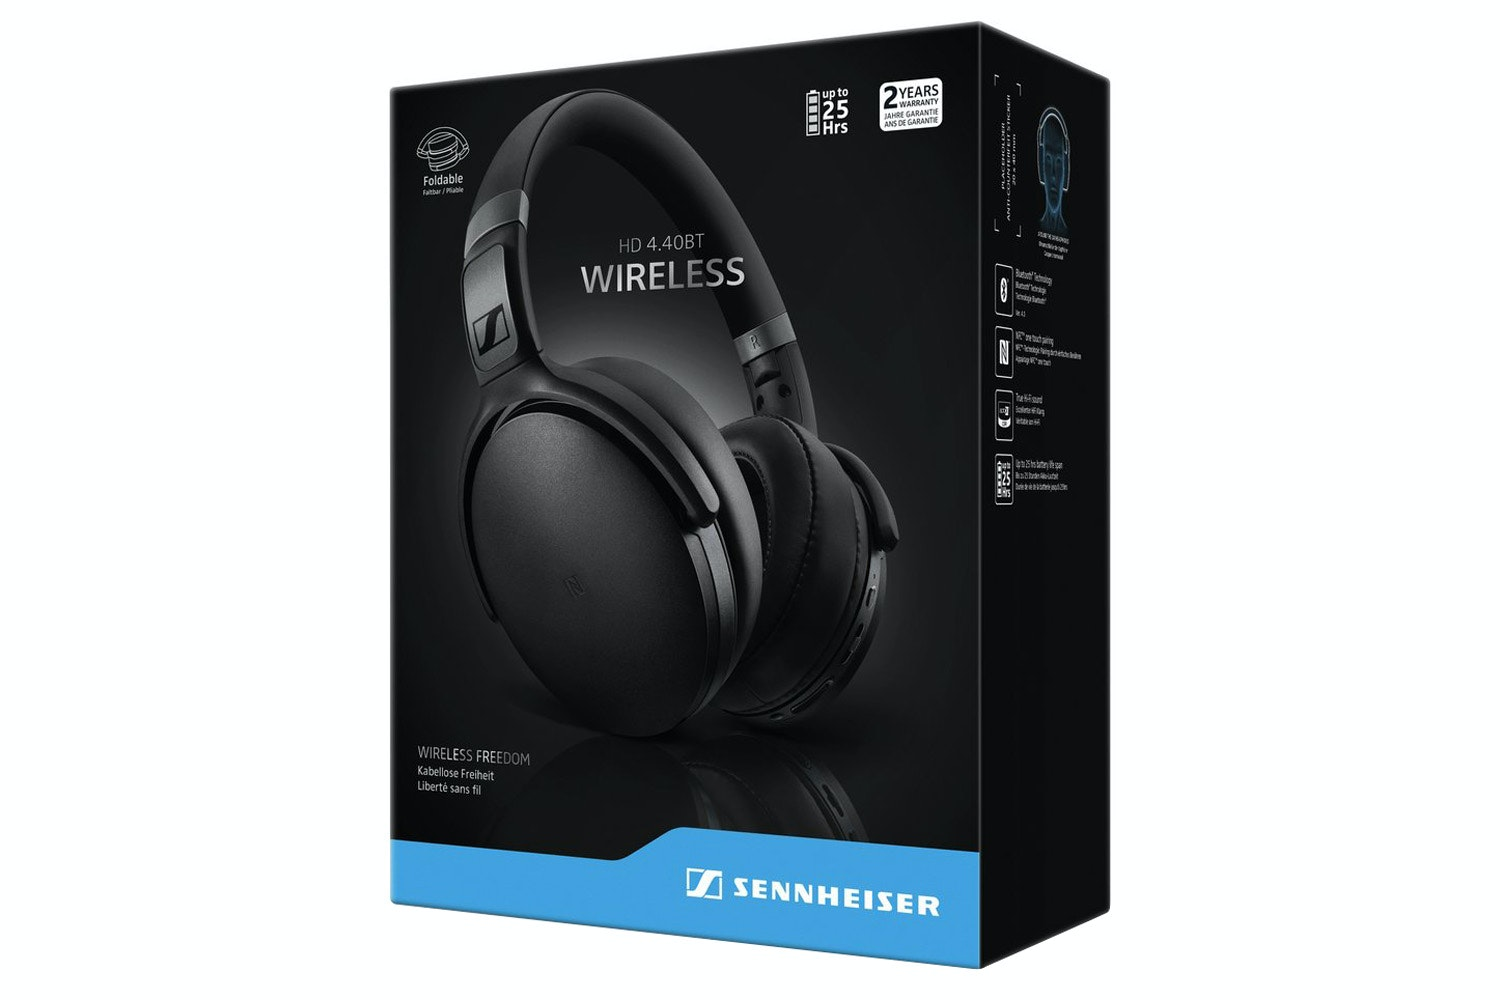 Sennheiser Wireless Bluetooth Headphones | HD4.40BT